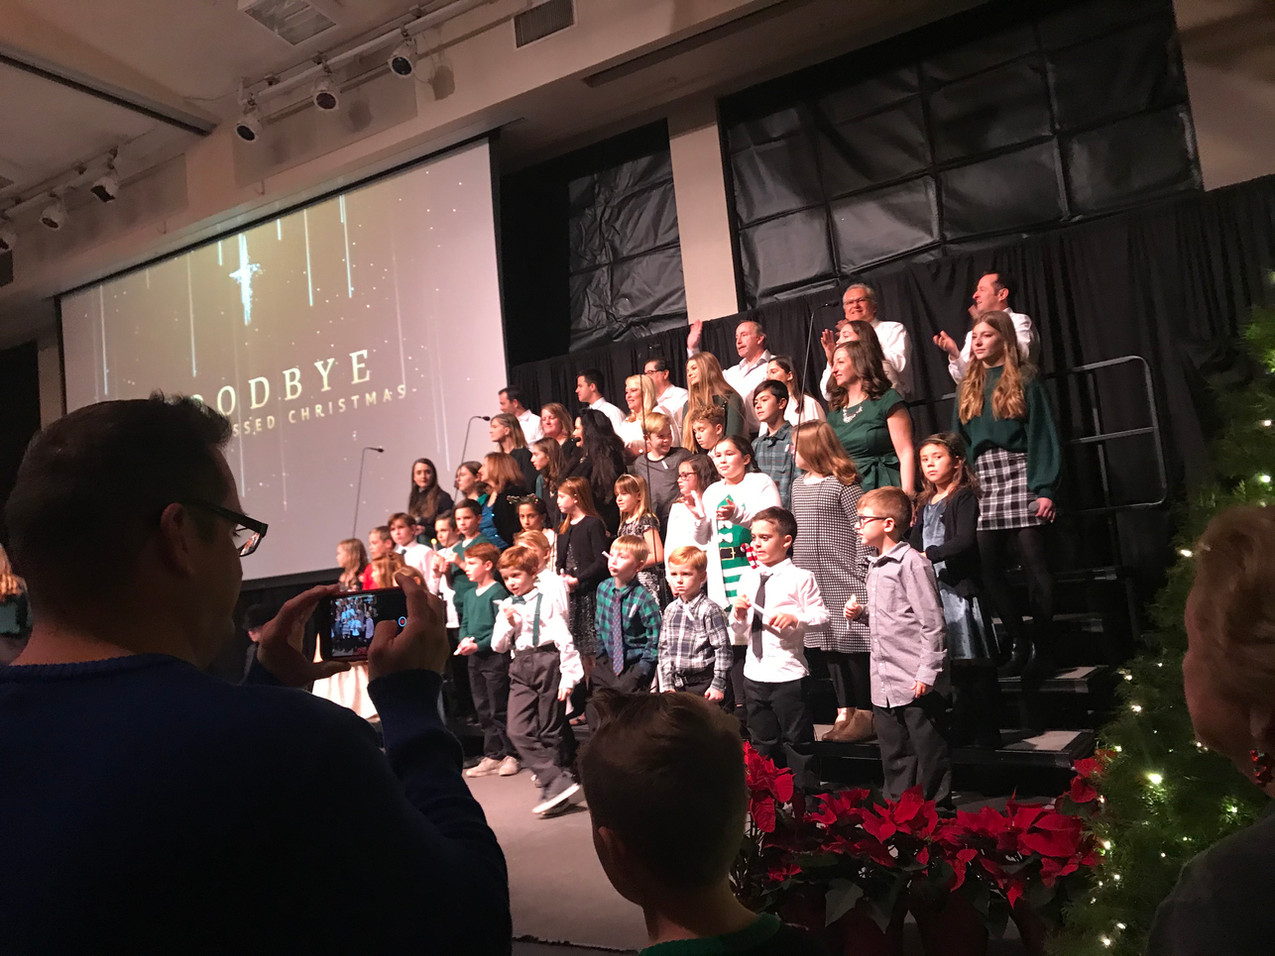 They loved seeing the kids sing!